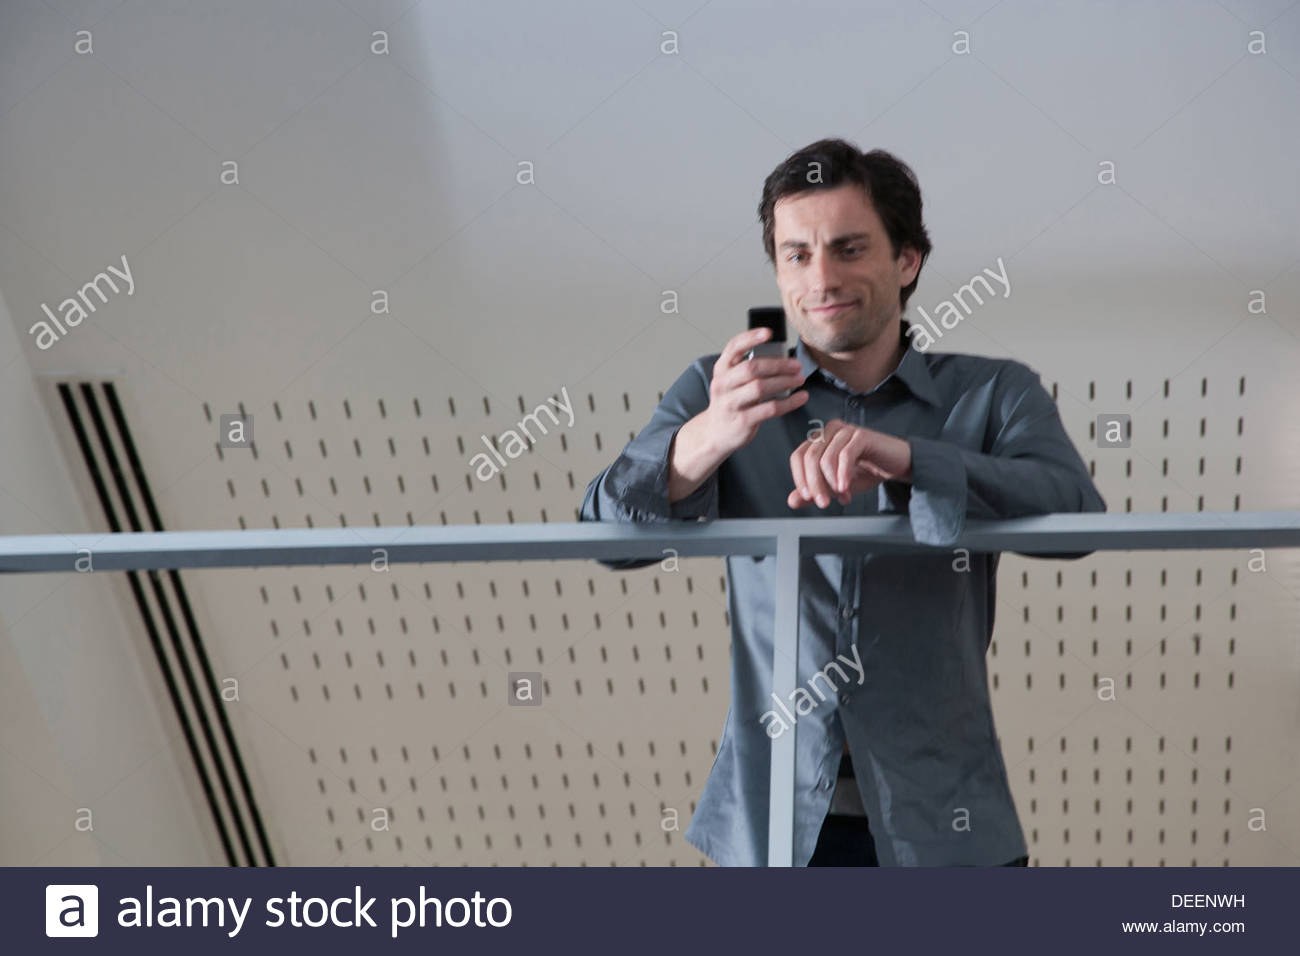 Businessman leaning on rail with using cell phone in office - Stock Image